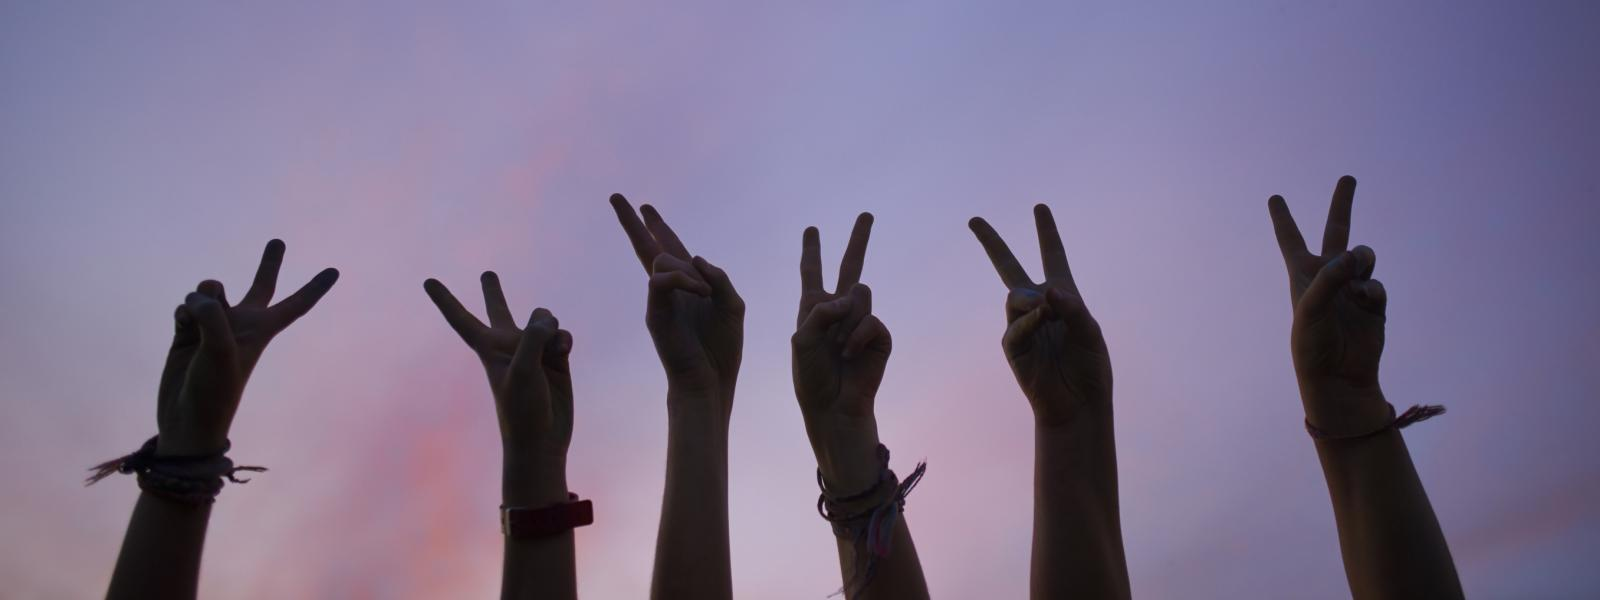 Six hands making the peace sign